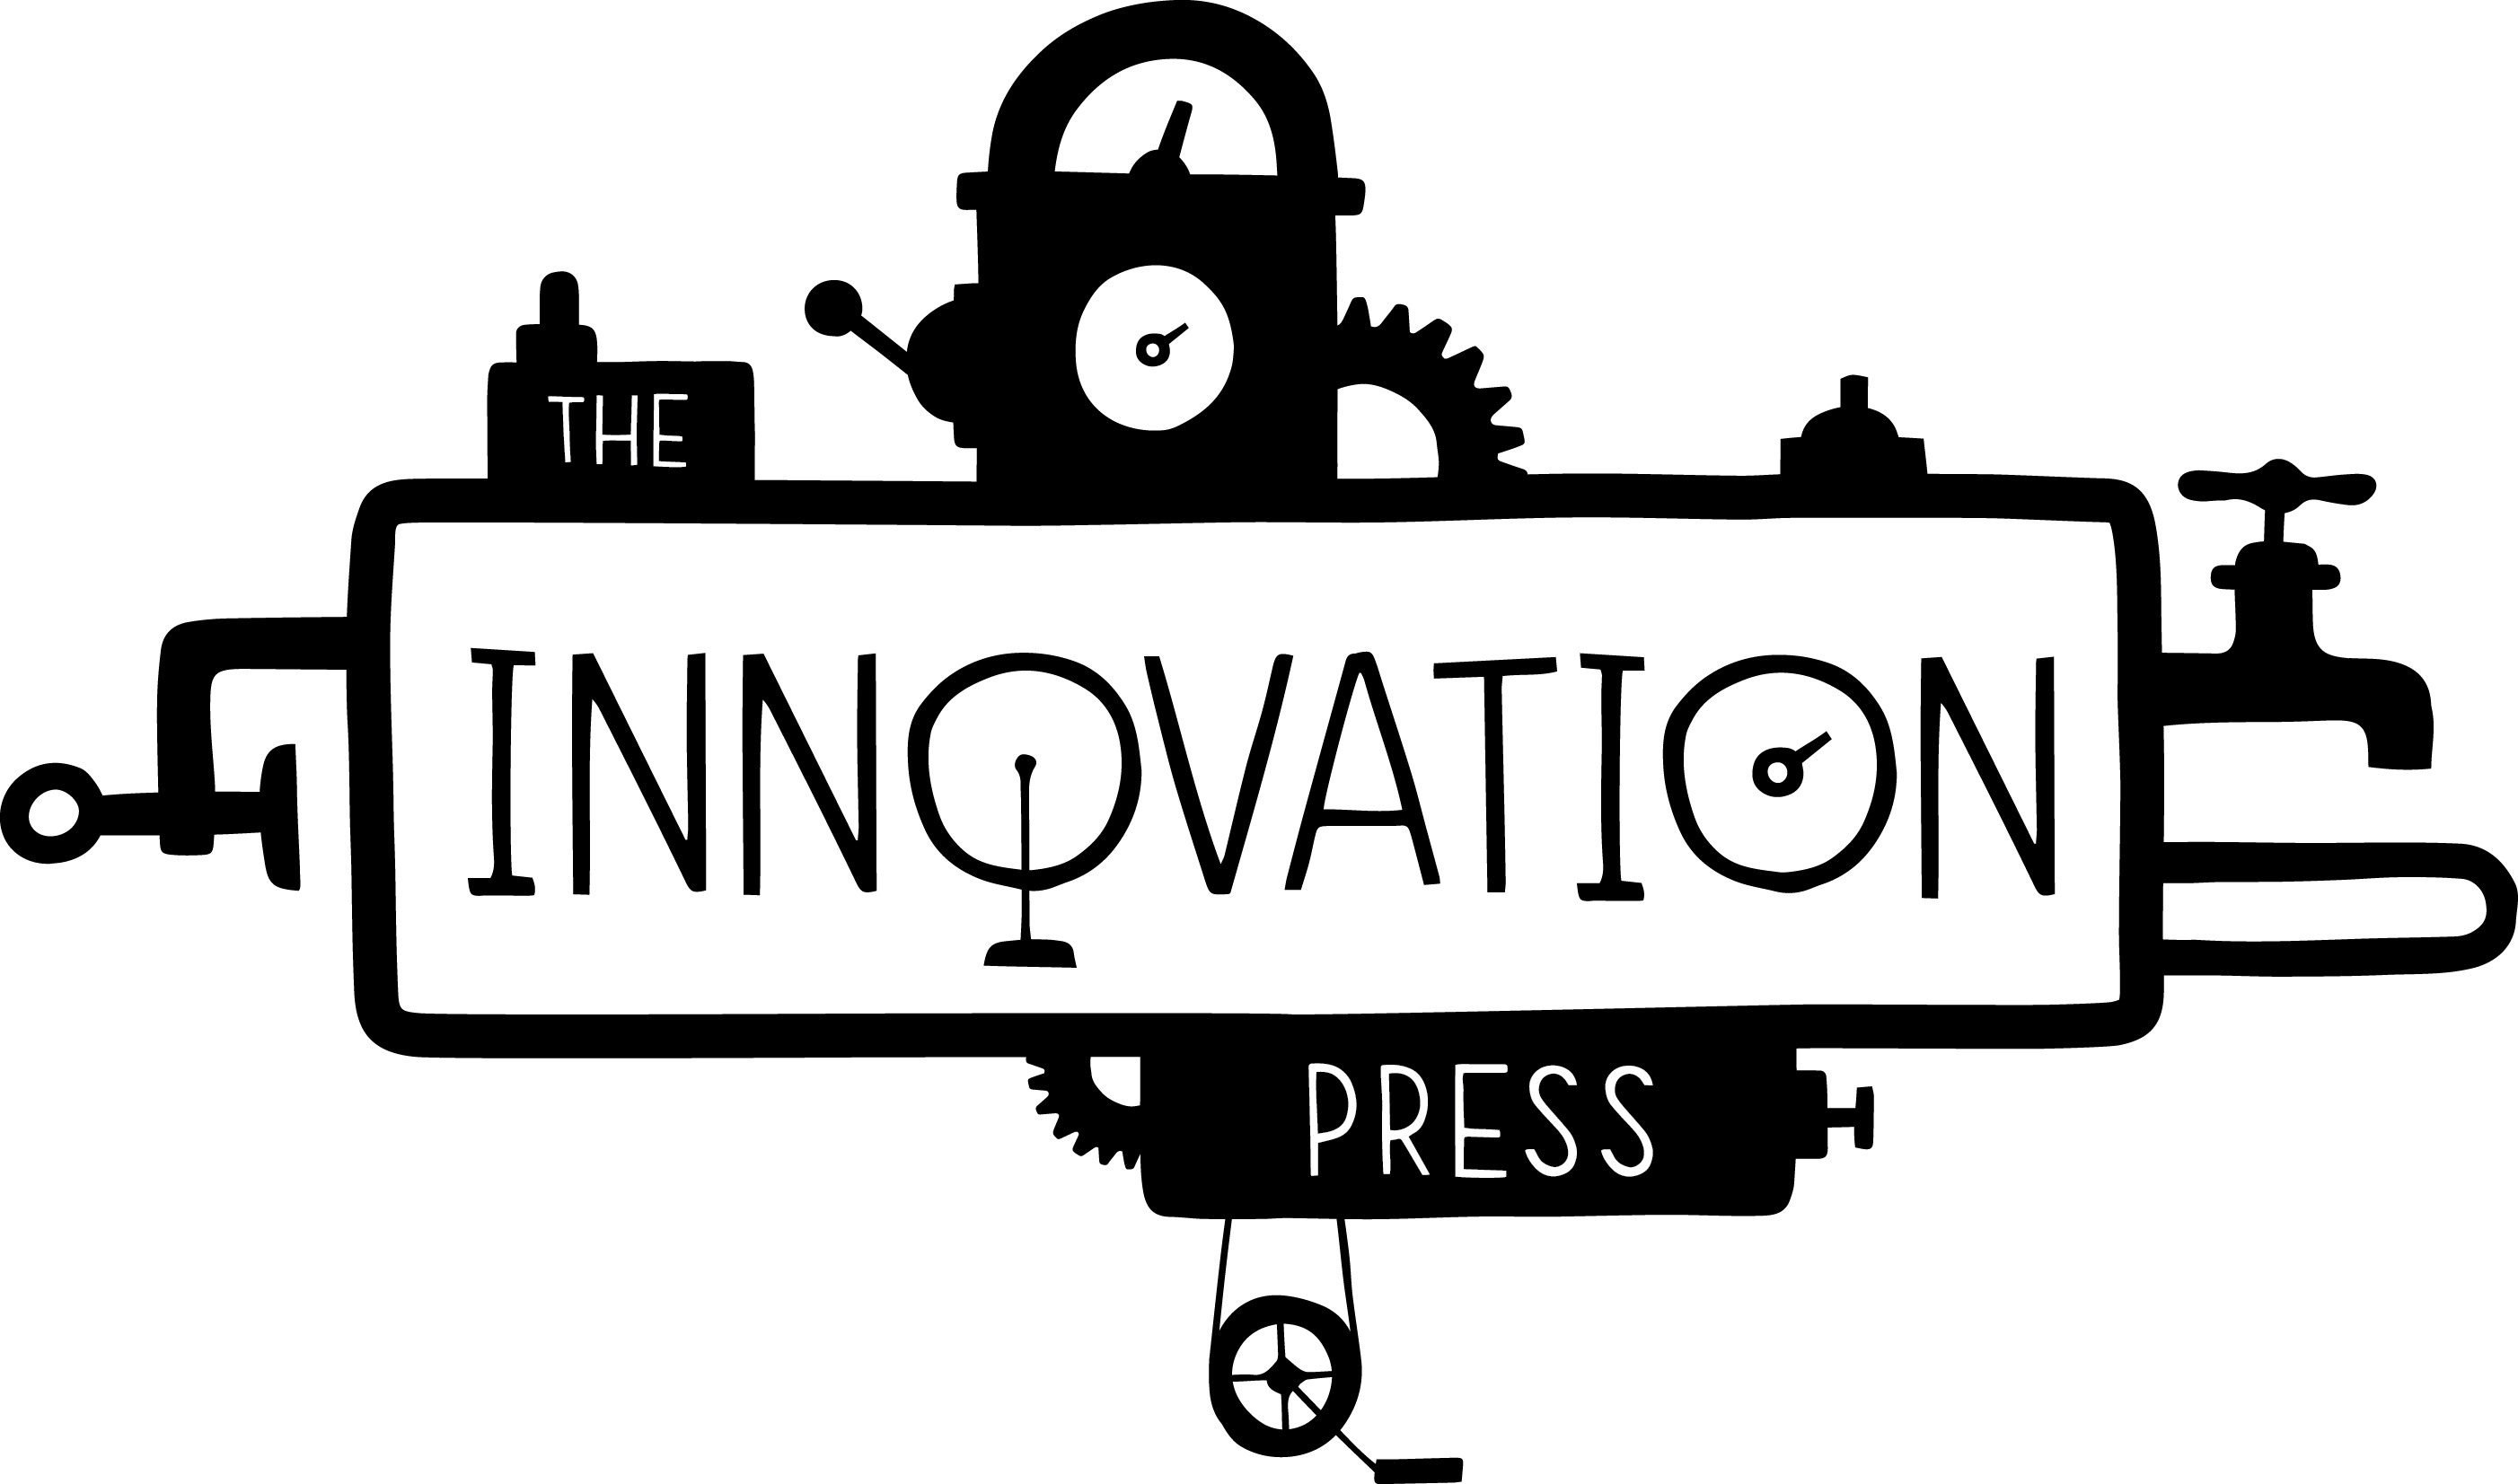 The Innovation Press